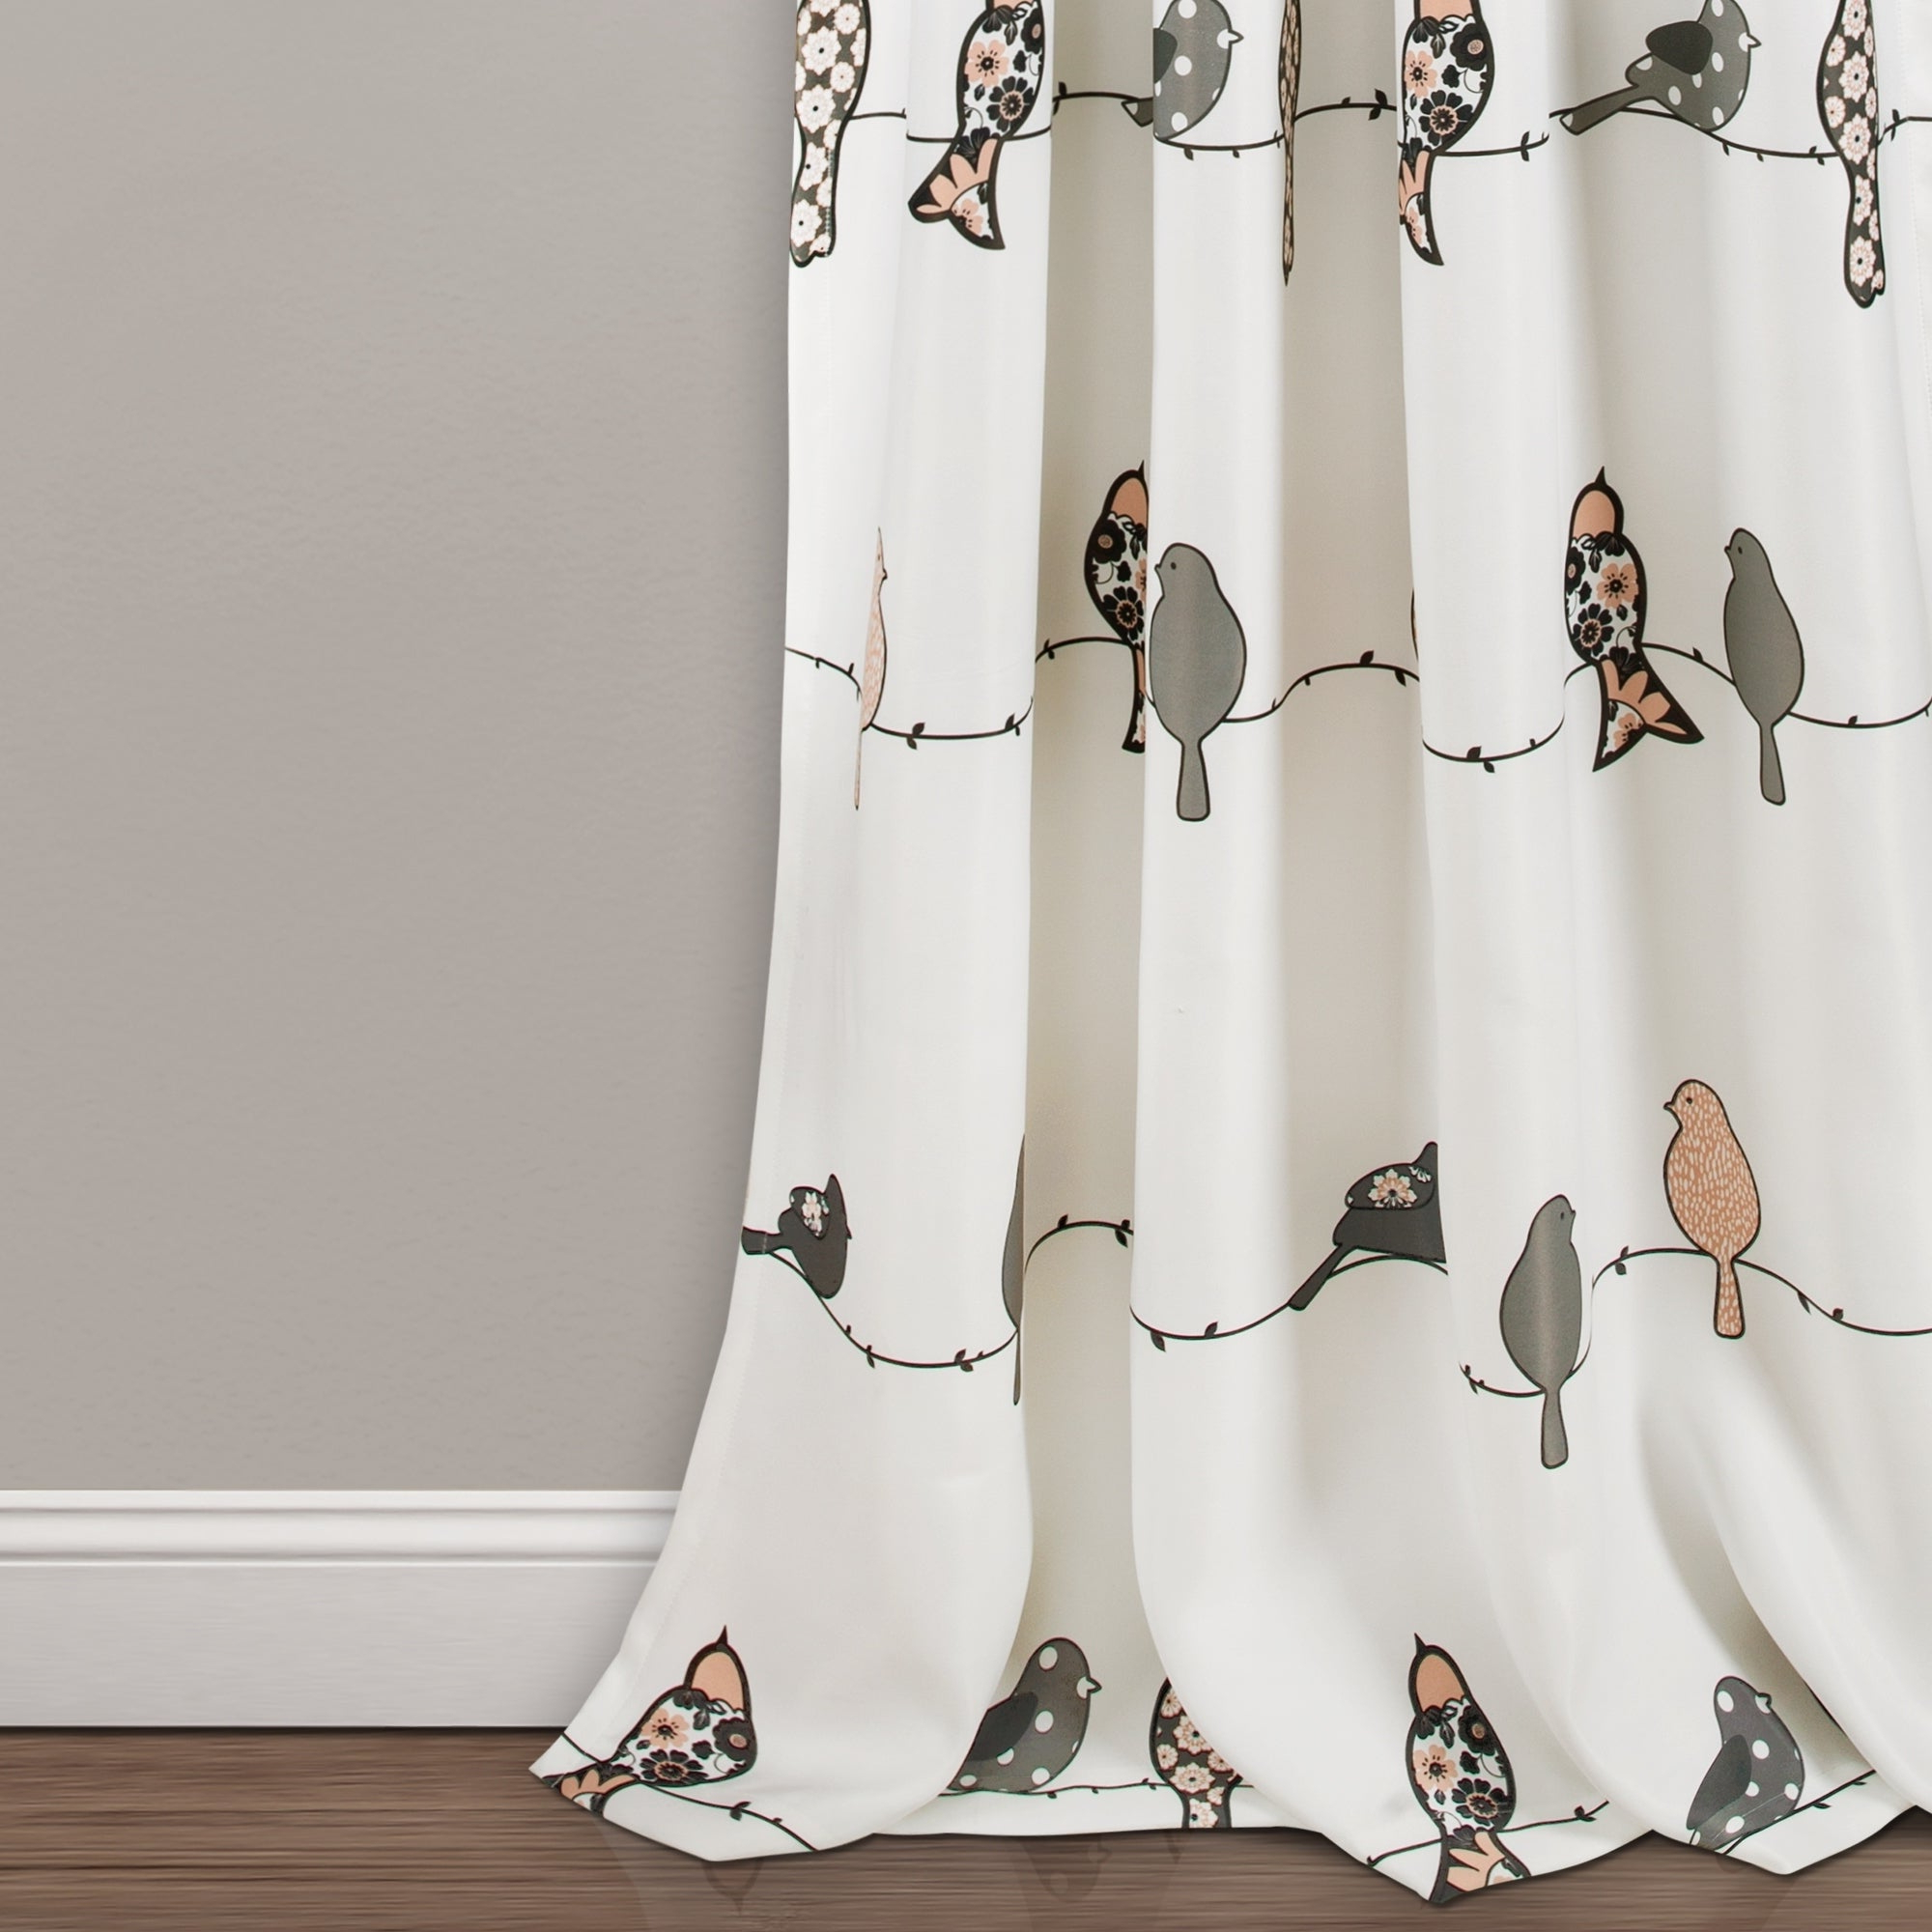 Lush Decor Rowley Birds Room Darkening Curtain Panel Pair Intended For Recent Rowley Birds Room Darkening Curtain Panel Pairs (View 8 of 20)